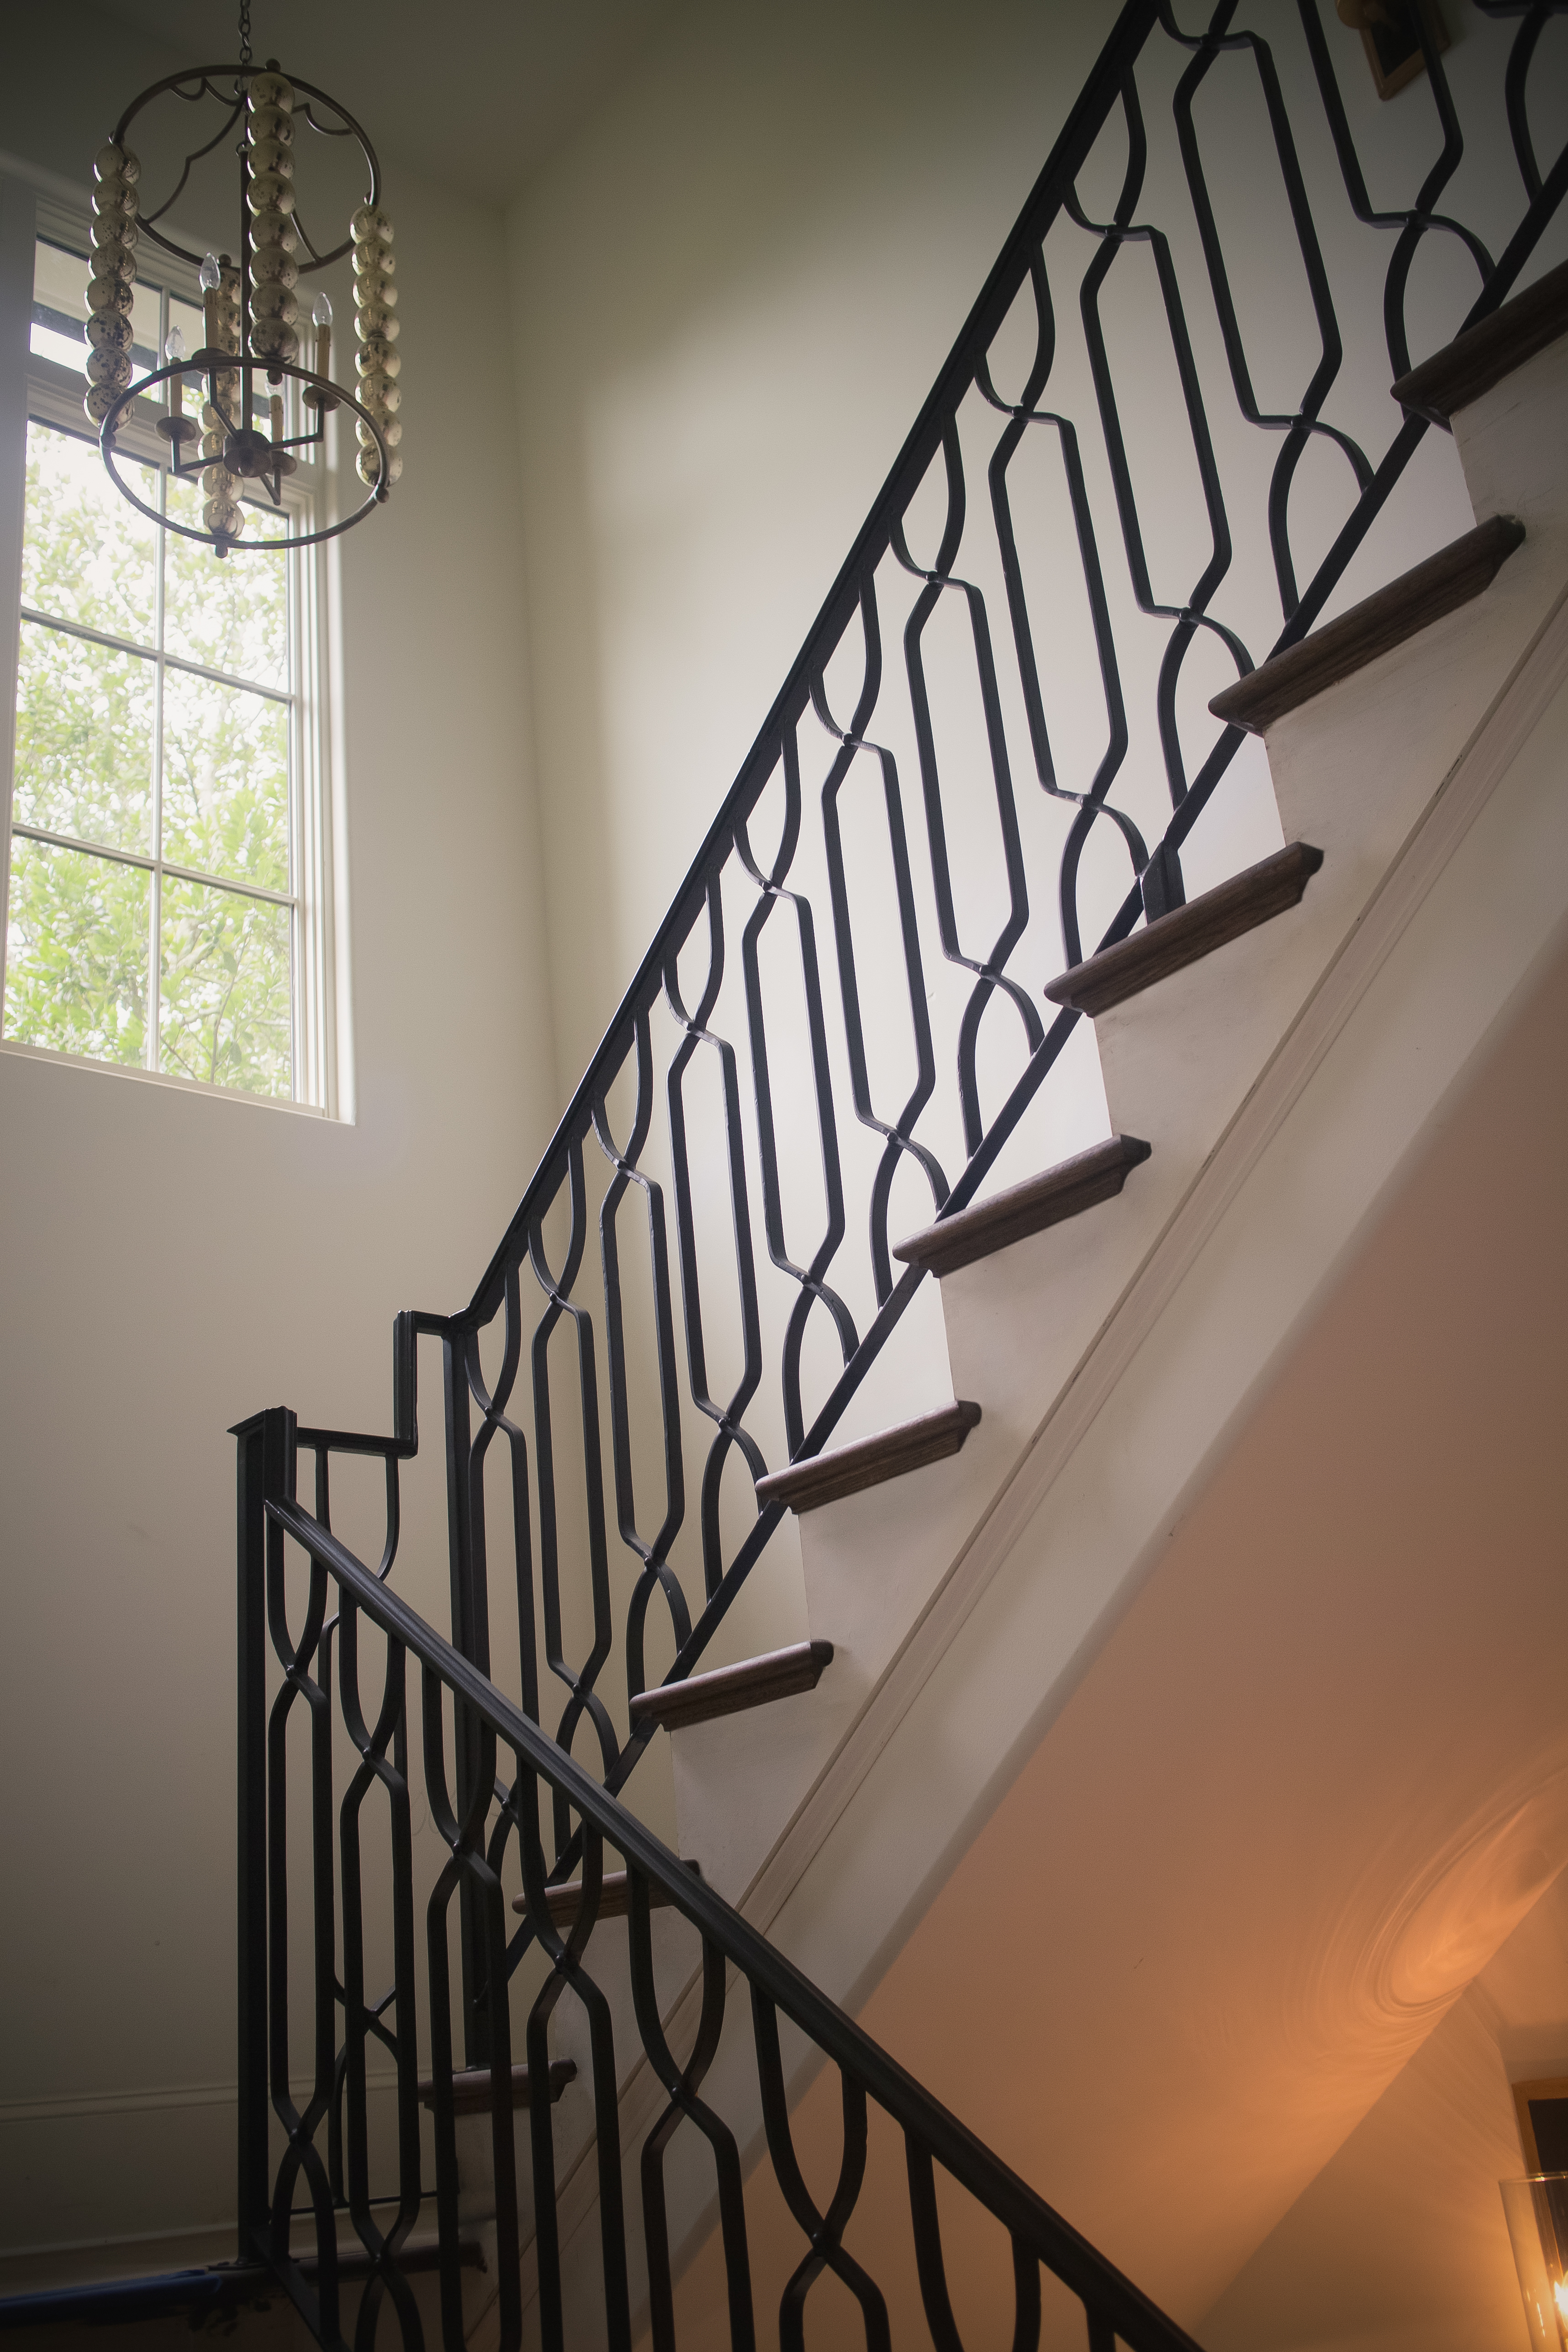 Builders' Show - Wrought Iron Stair Railings: Process and ...